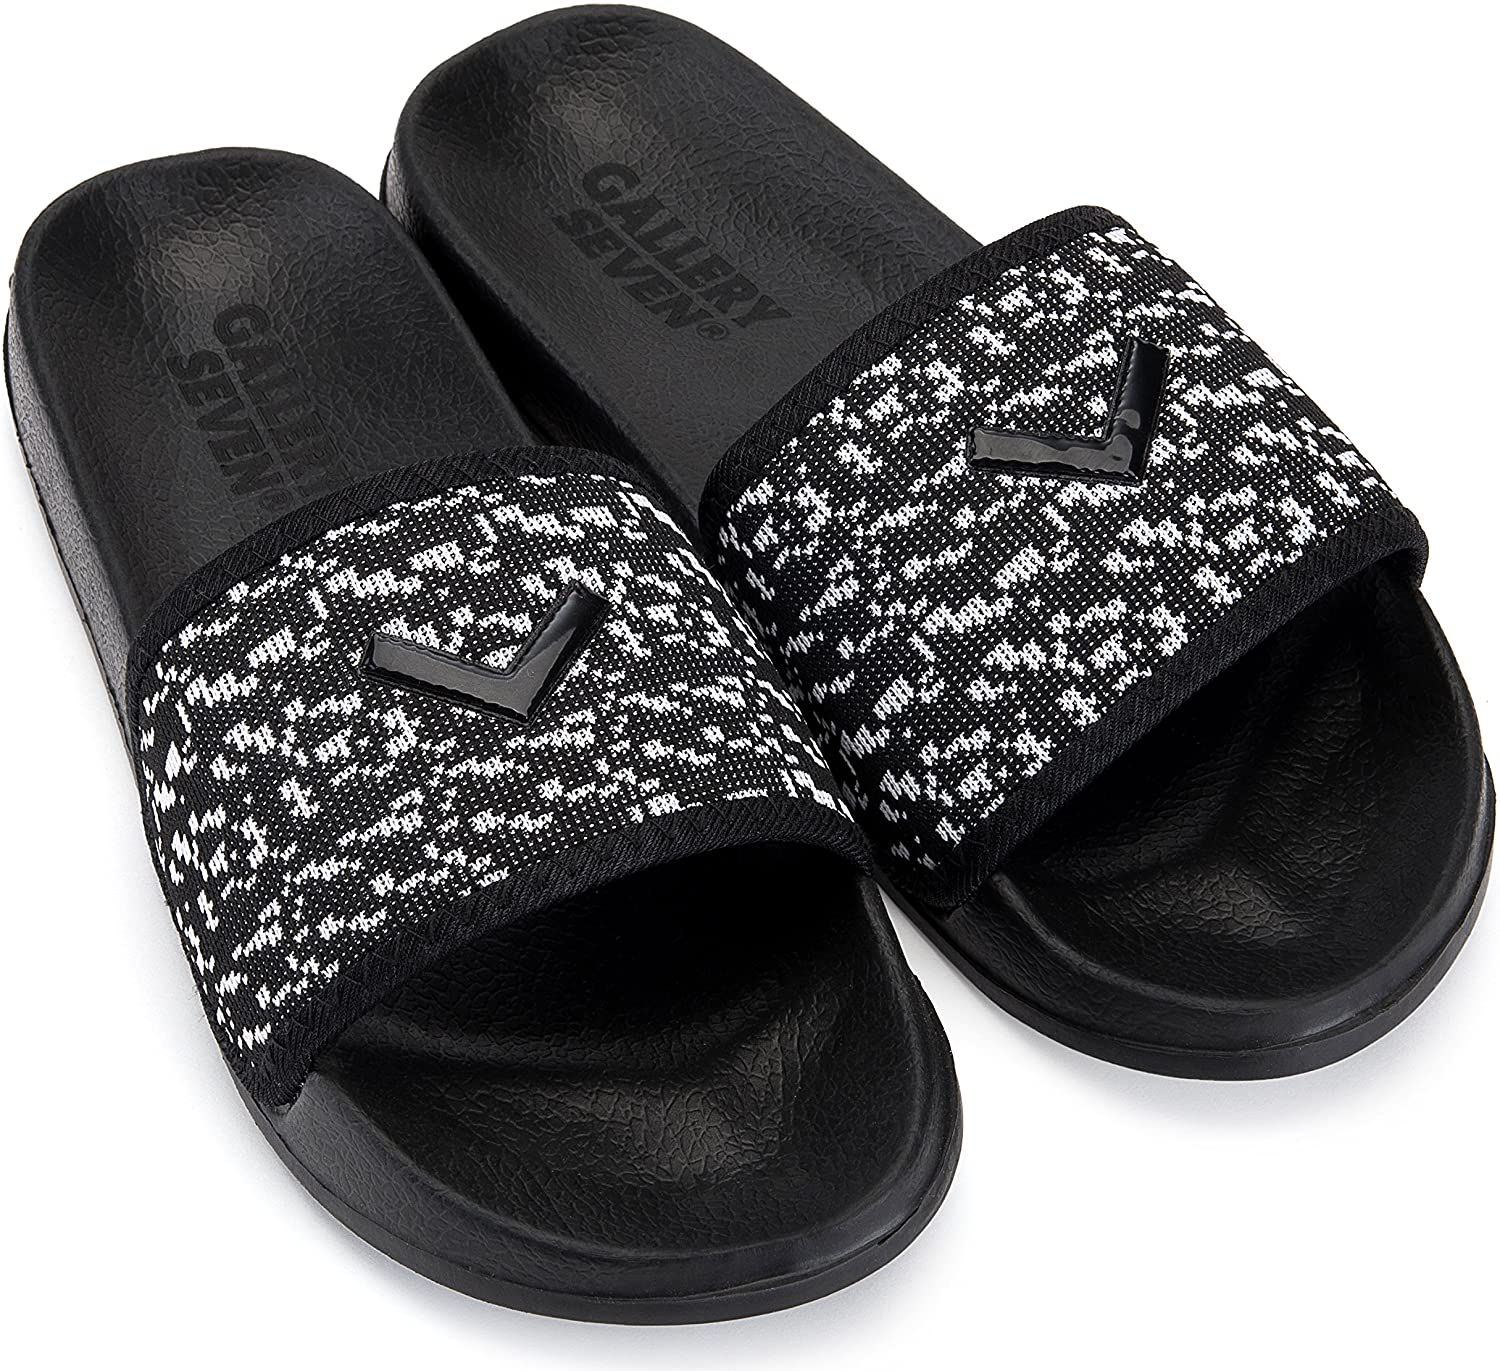 Gallery Seven Mens Athletic Slide Sandals - Beach and House Slippers